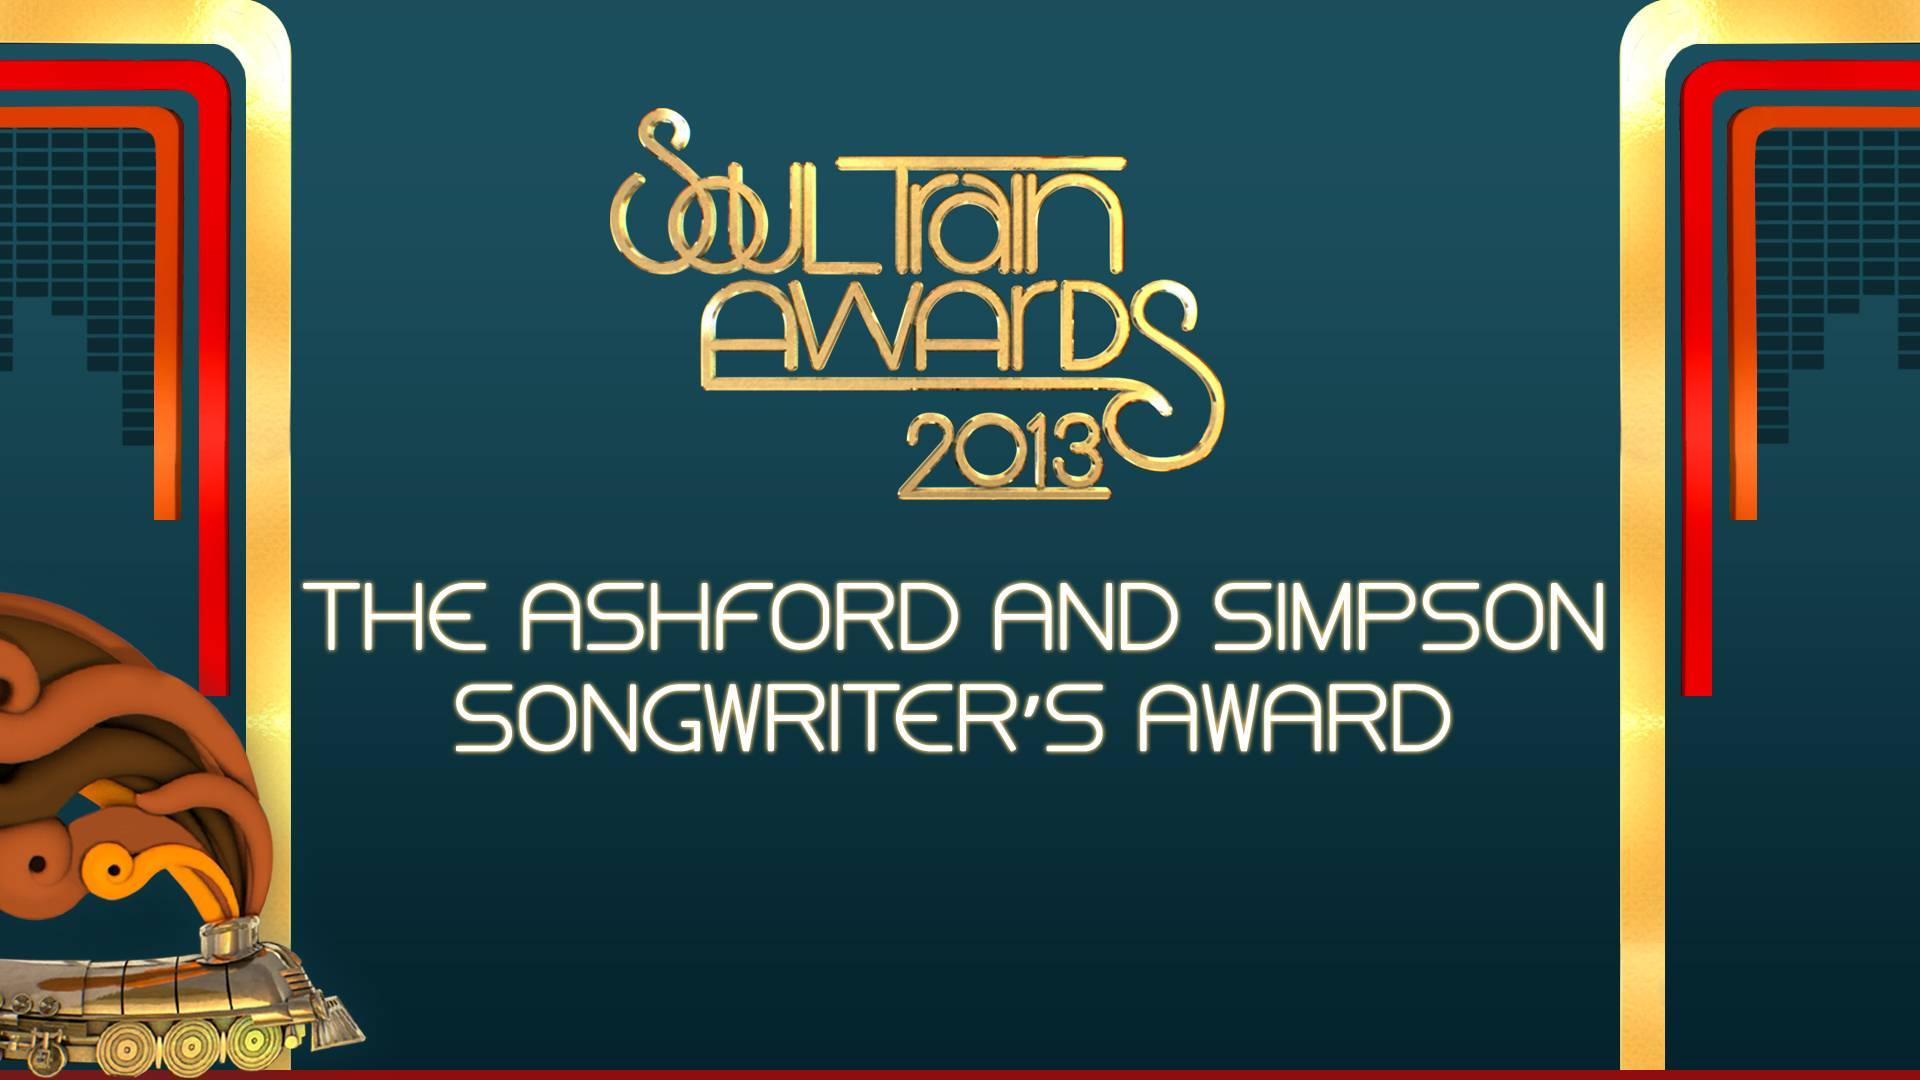 The Ashford And Simpson Songwriters Award